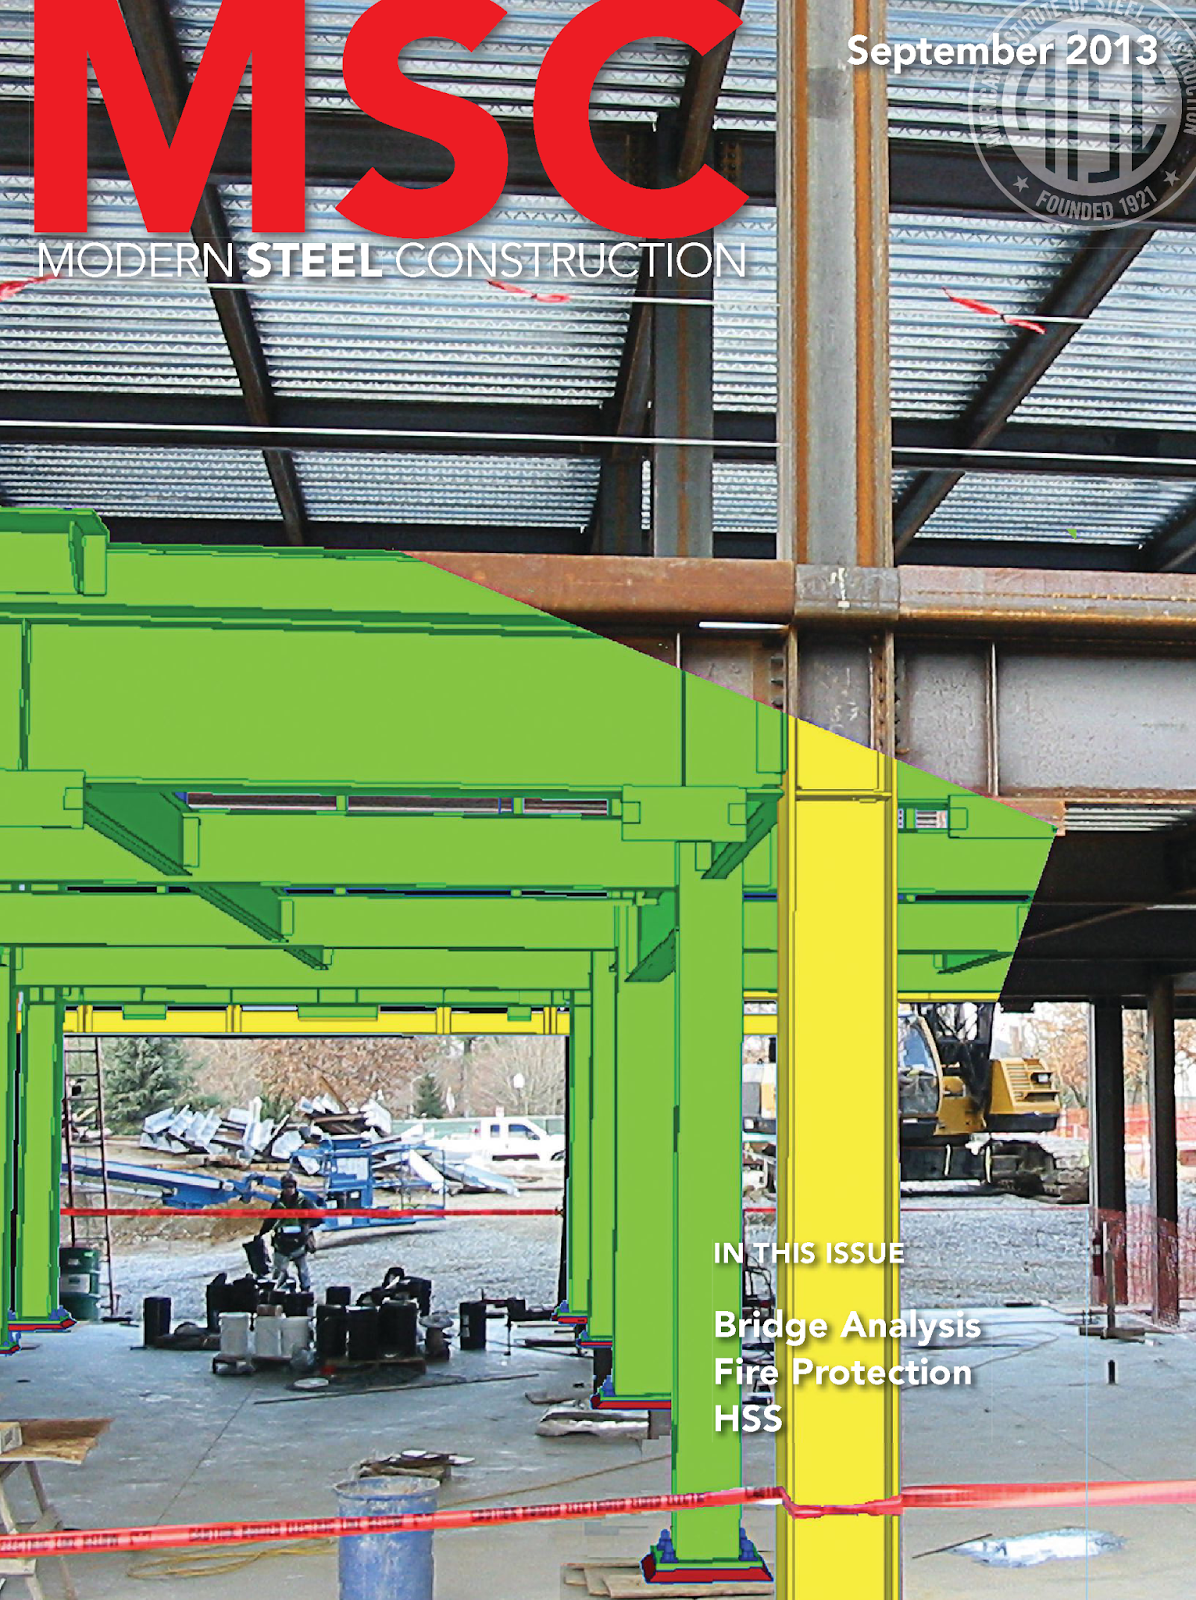 Modern Steel Construction Magazine (September 2013 Issue)